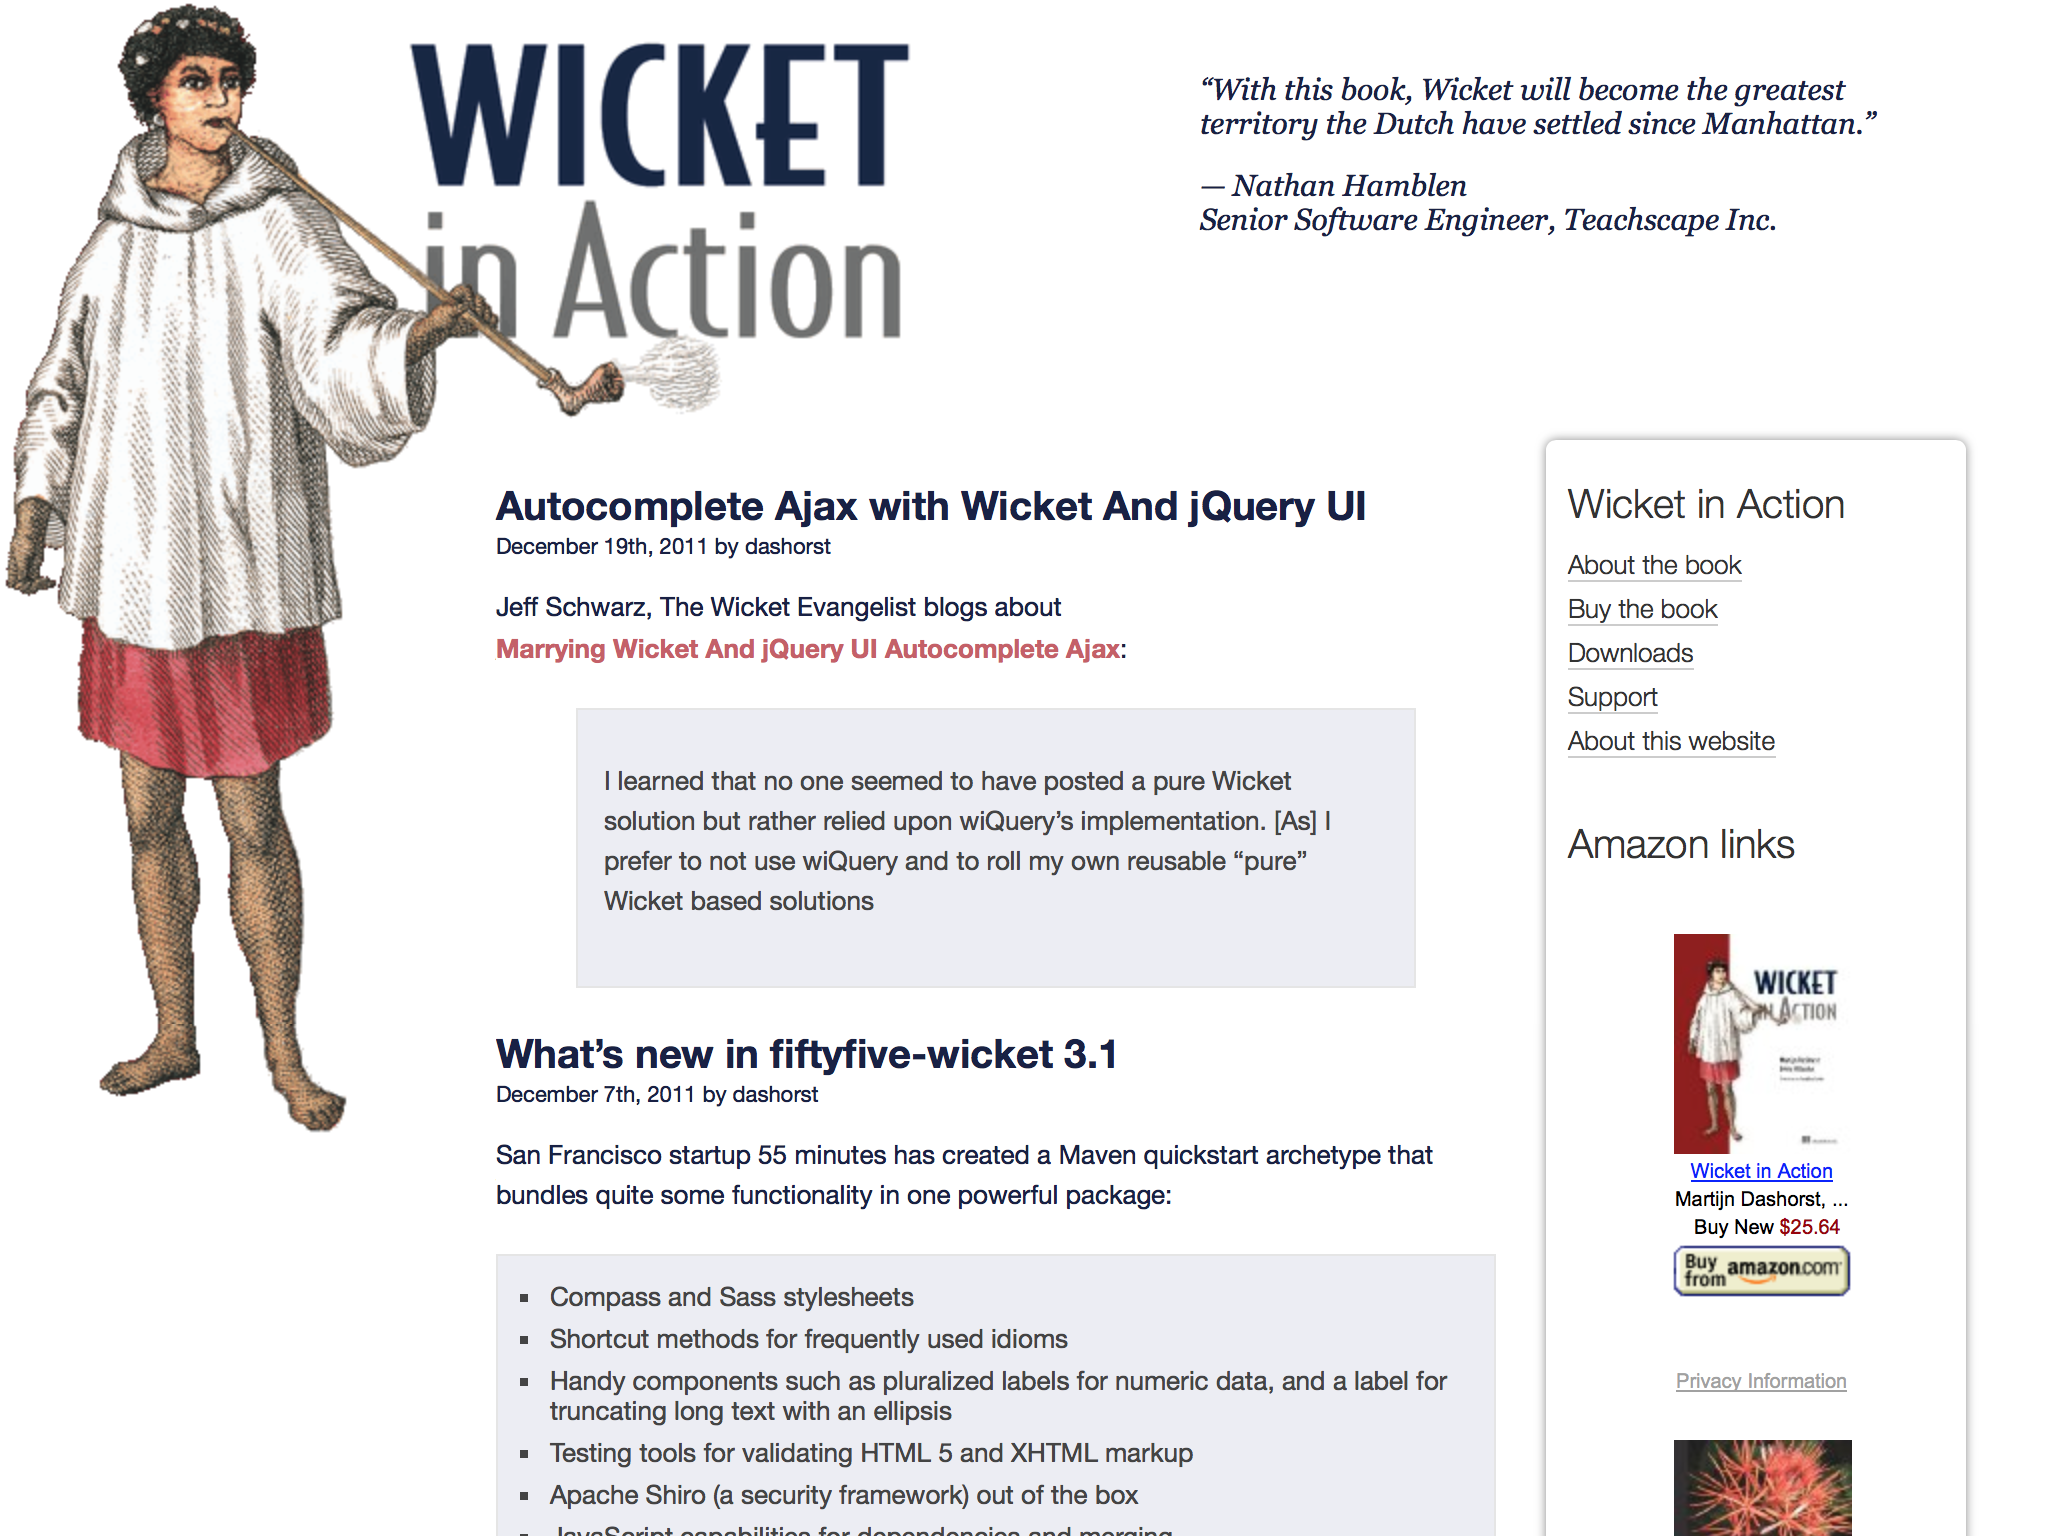 Screenshot of original Design of Wicket in Action